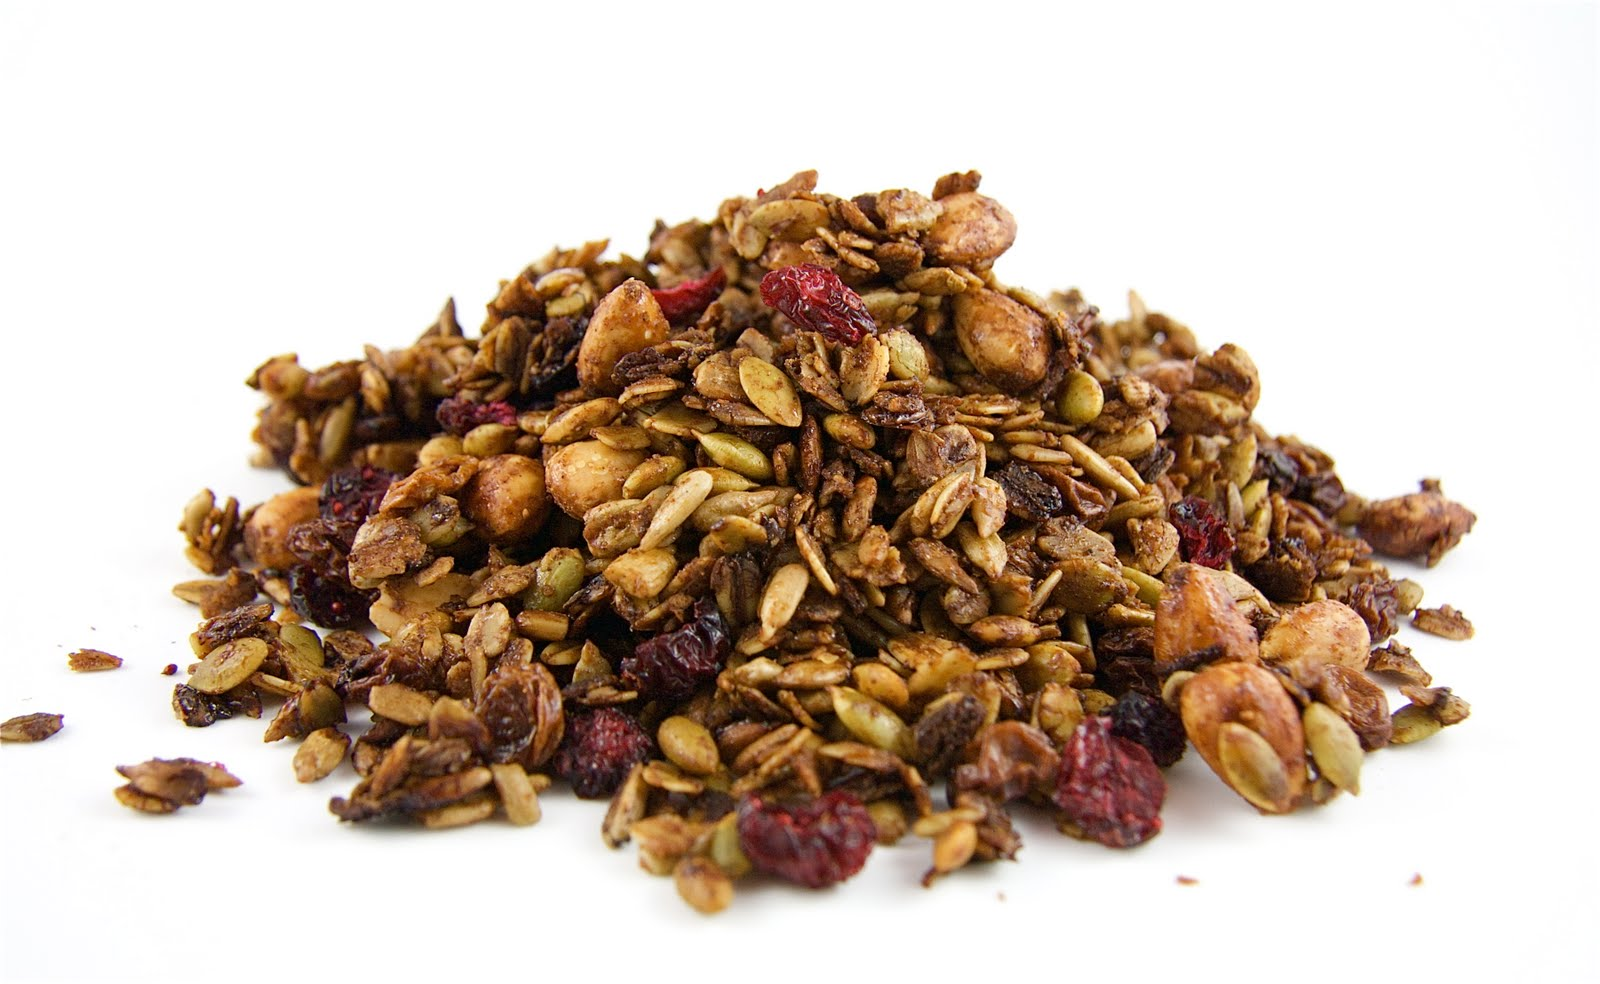 Homemade Granola - The Culinary Chase